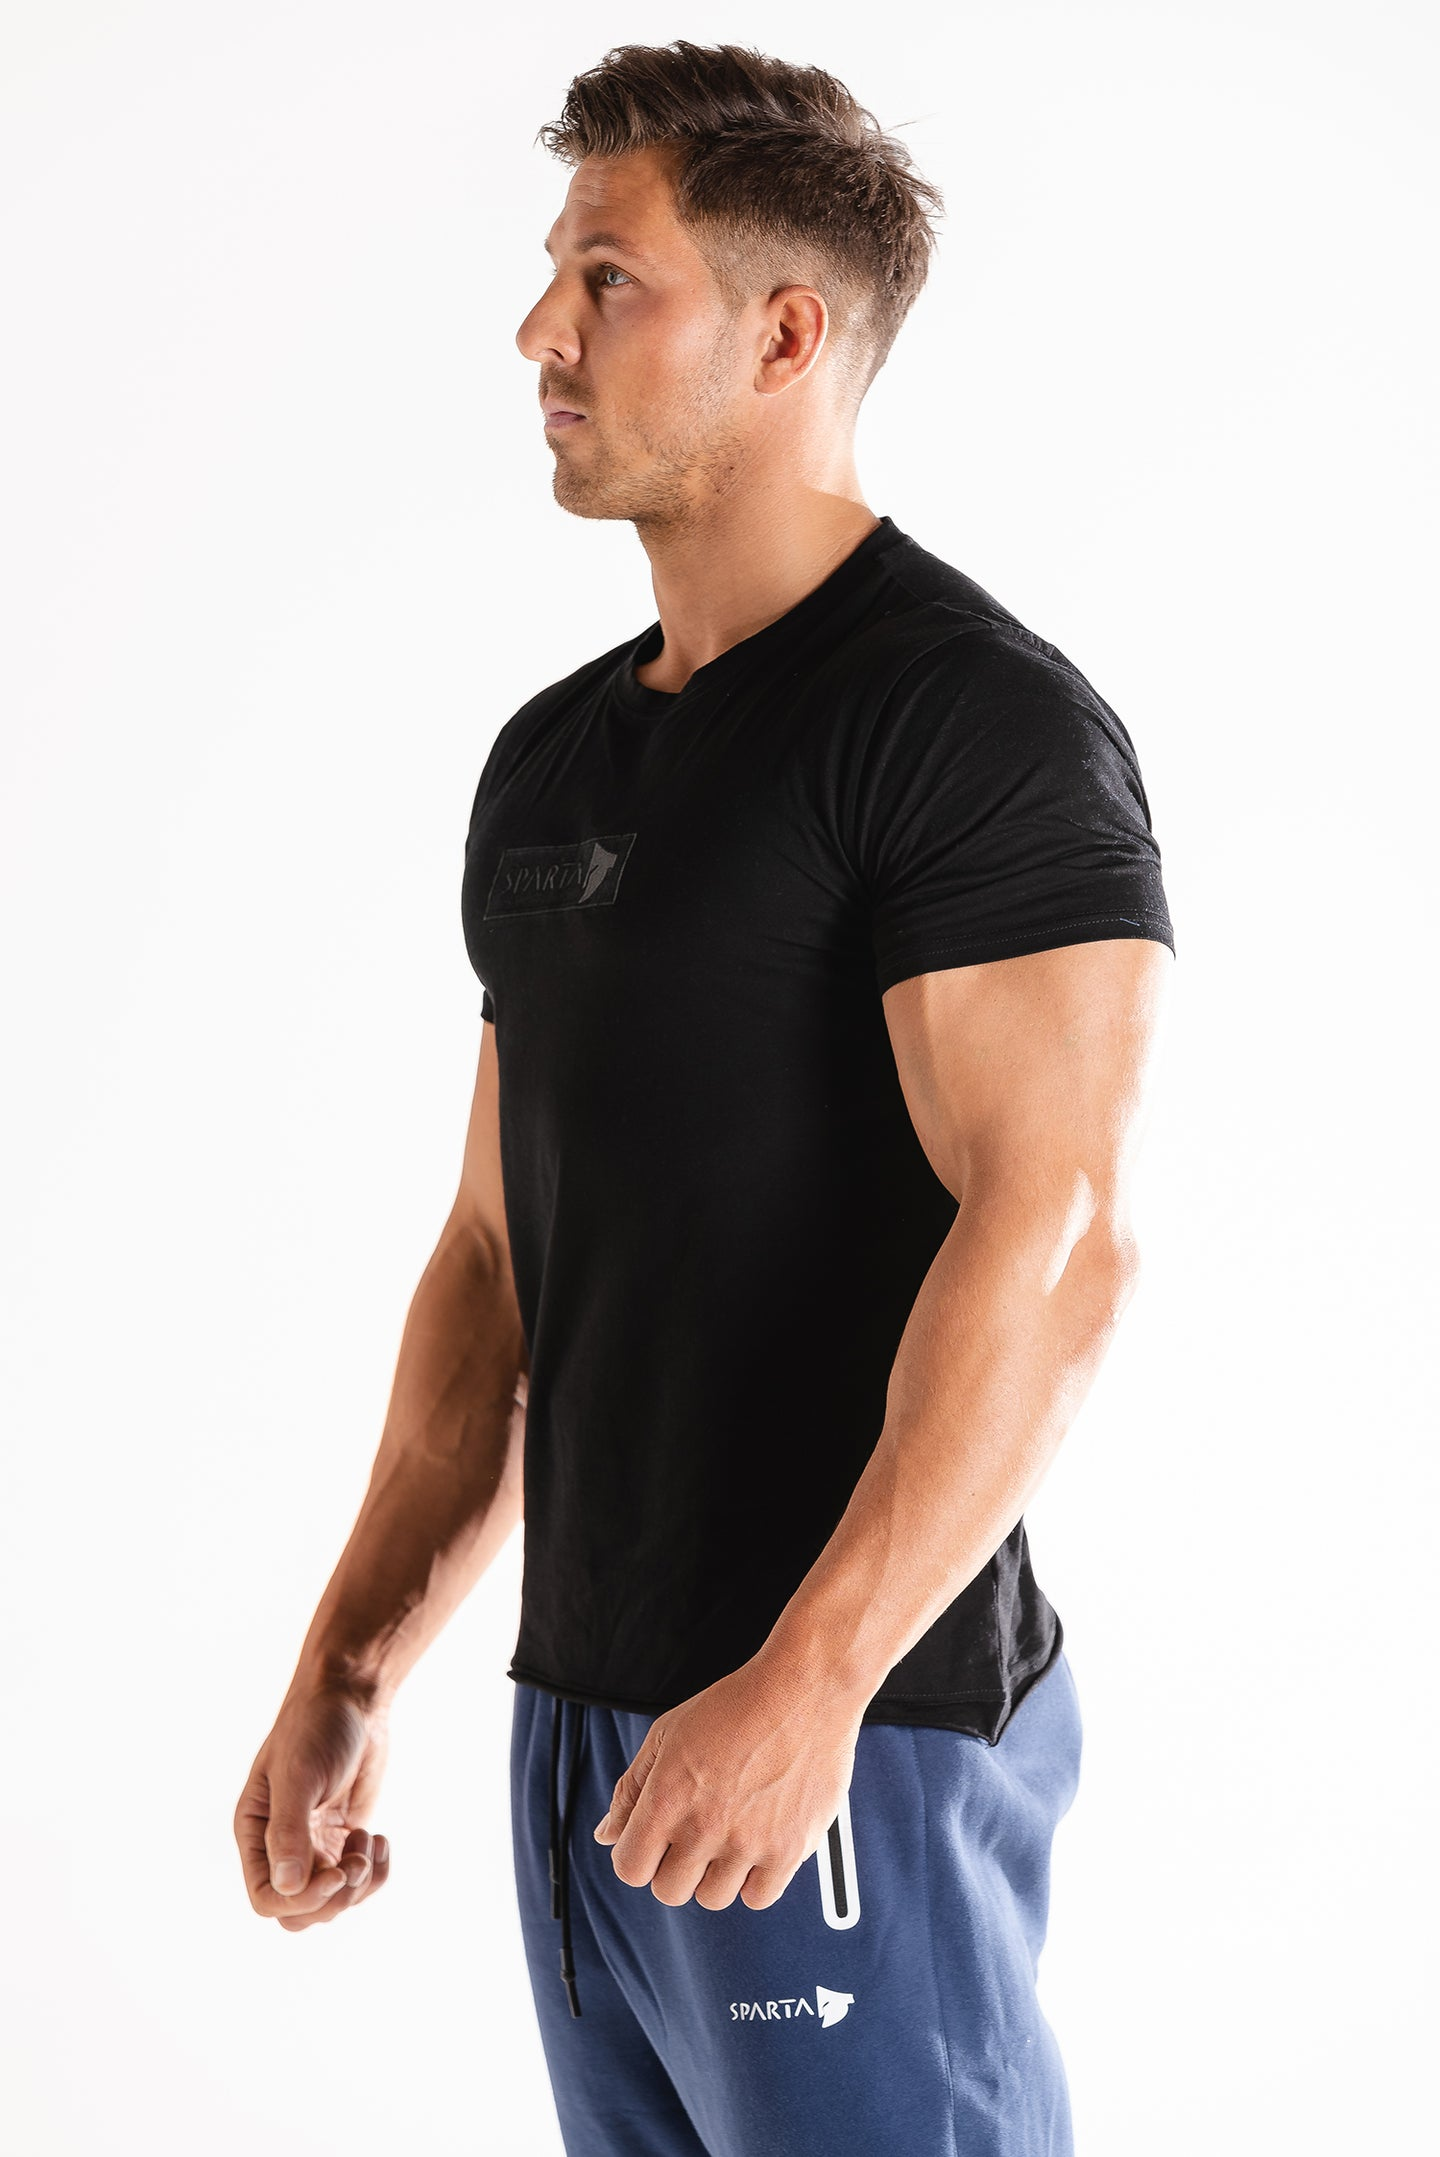 Sparta Raw T-Shirt - Black - Sparta Gym Wear